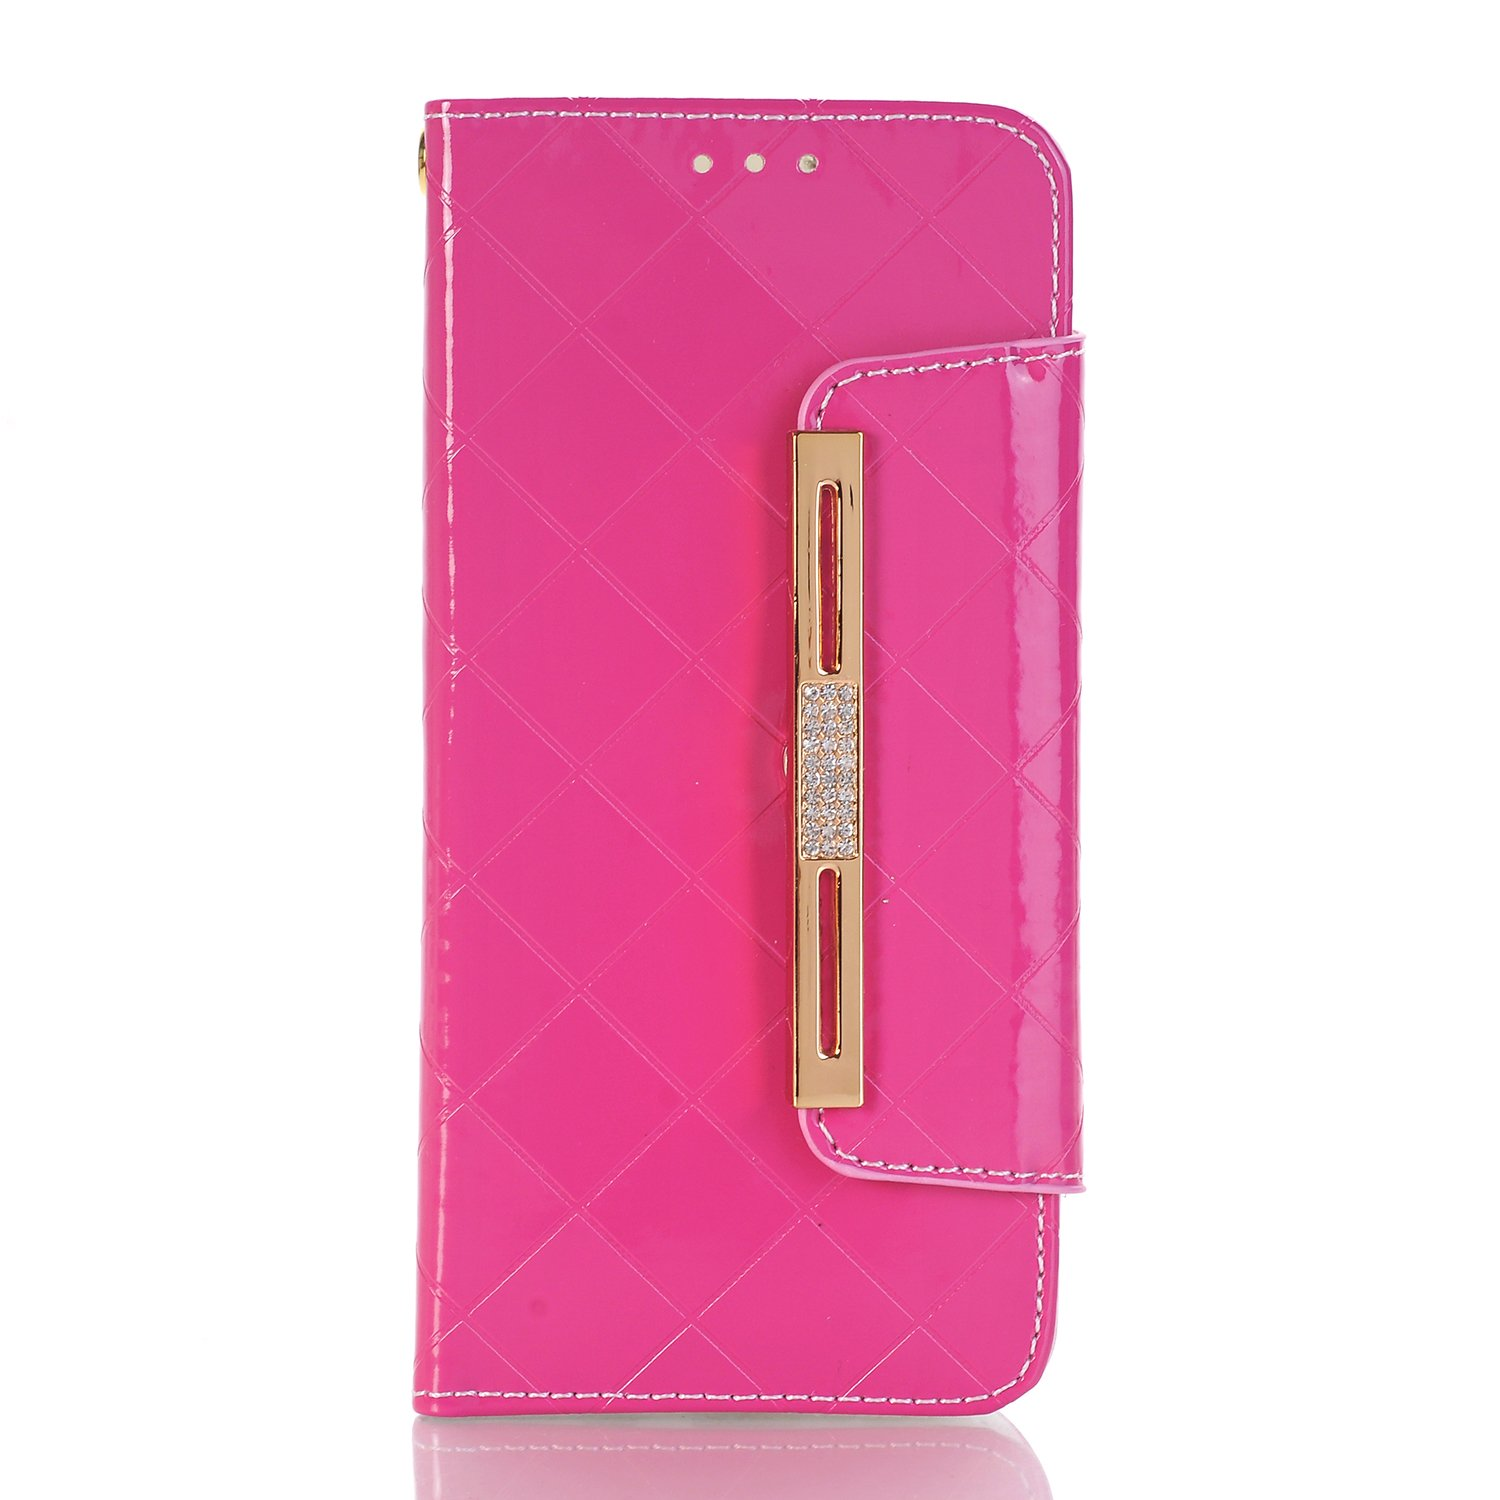 Samsung Galaxy S8 Plus Wallet Cover,Stylish Cute Women/Girls Wallet Case with Wrist Strap, YiMiky PU Leather Flip Card Holder Shockproof Protective Case for Samsung Galaxy S8 Plus-Hot Pink